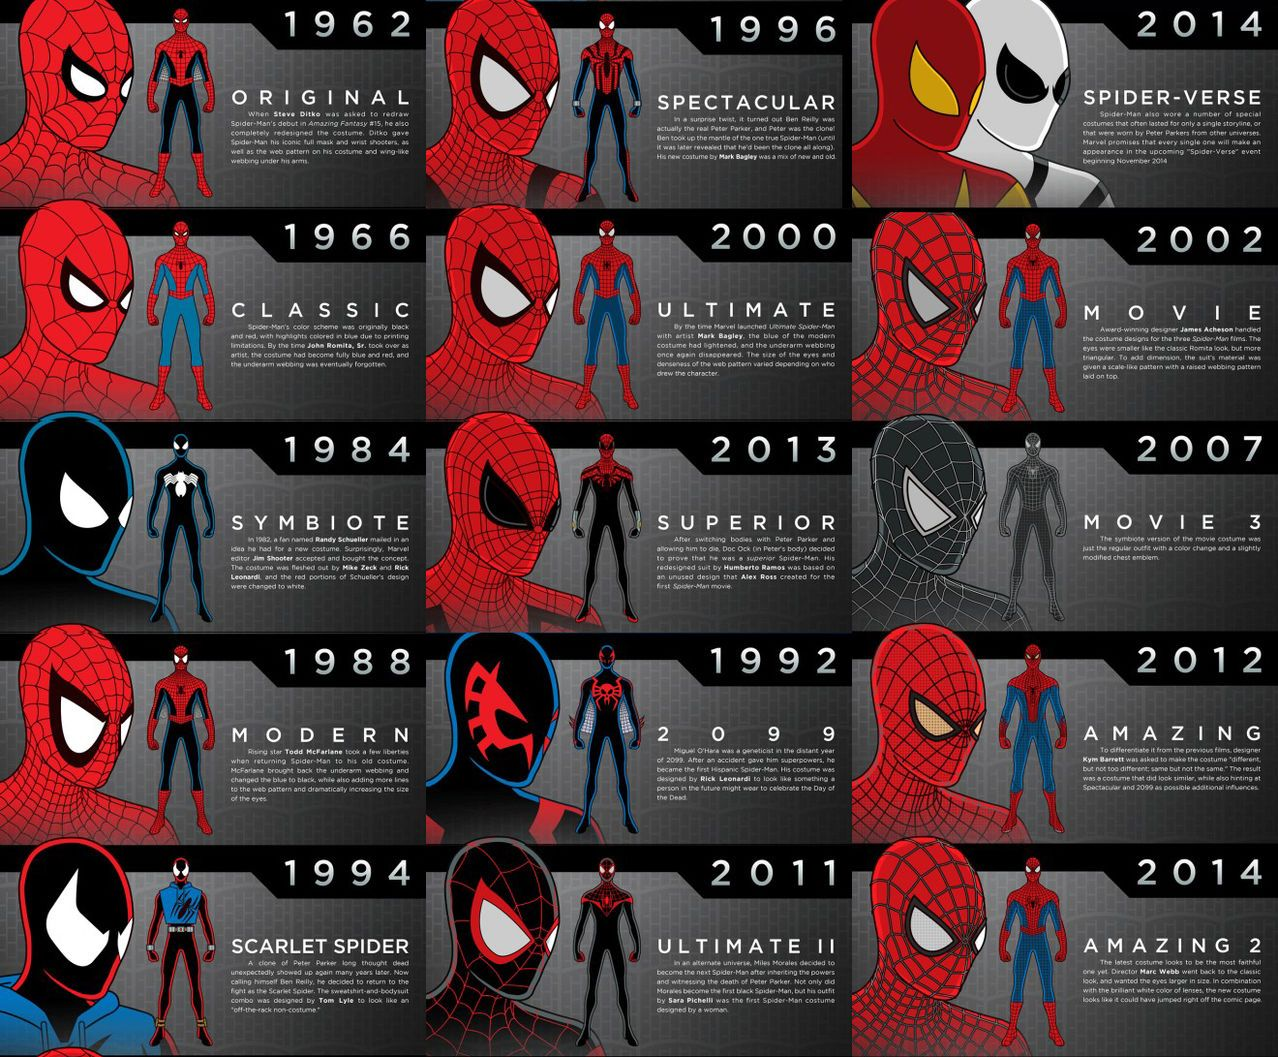 marvels spiderman costume part 2 archive the